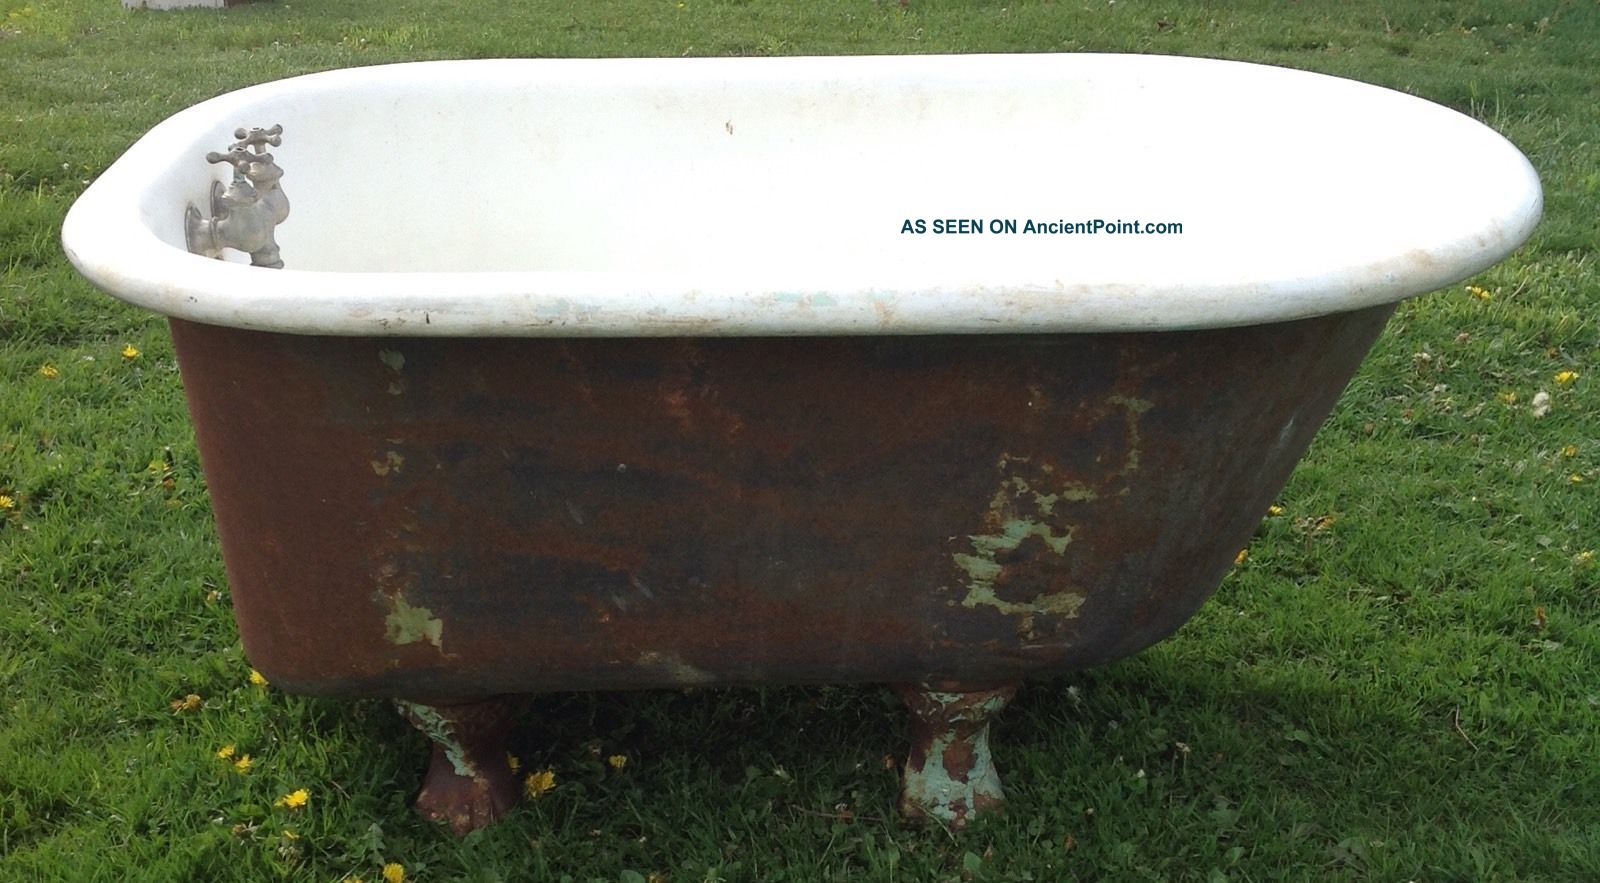 Vintage 4 Foot Cast Iron Claw Foot Tub With Claw Feet Bath Tubs photo